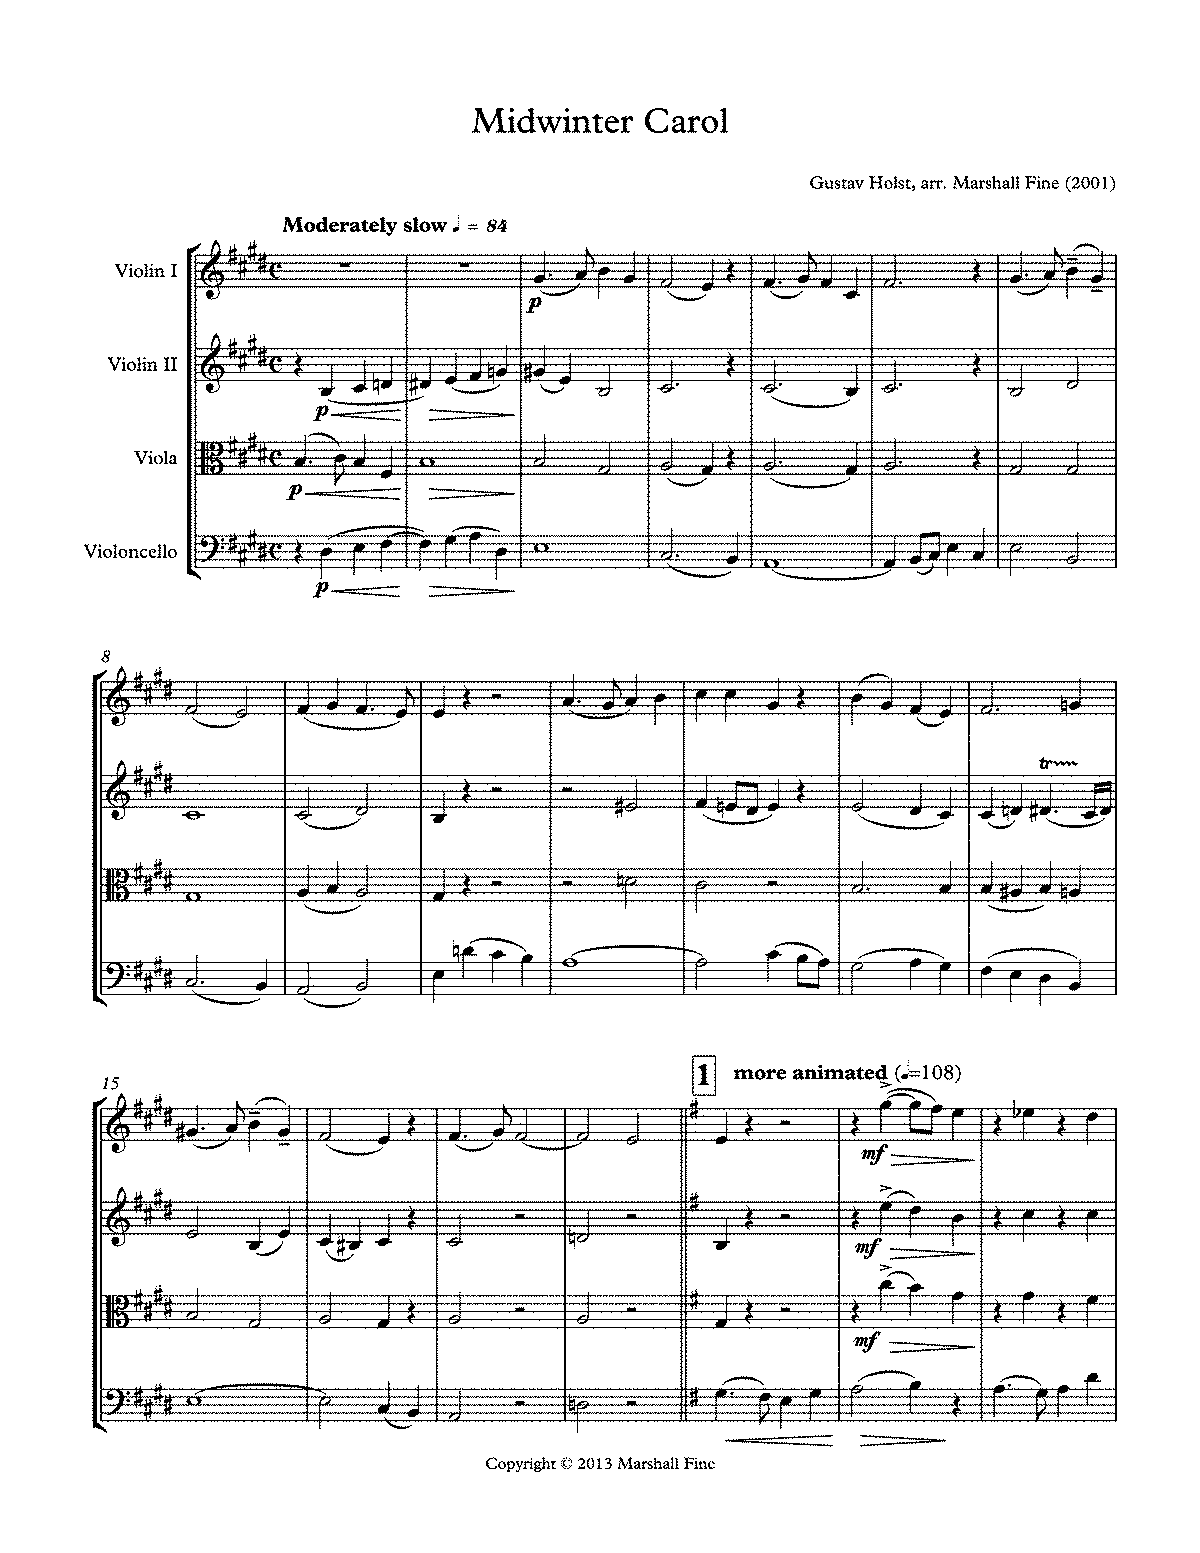 PMLP176422-Holst Midwinter Carol - score and parts.pdf